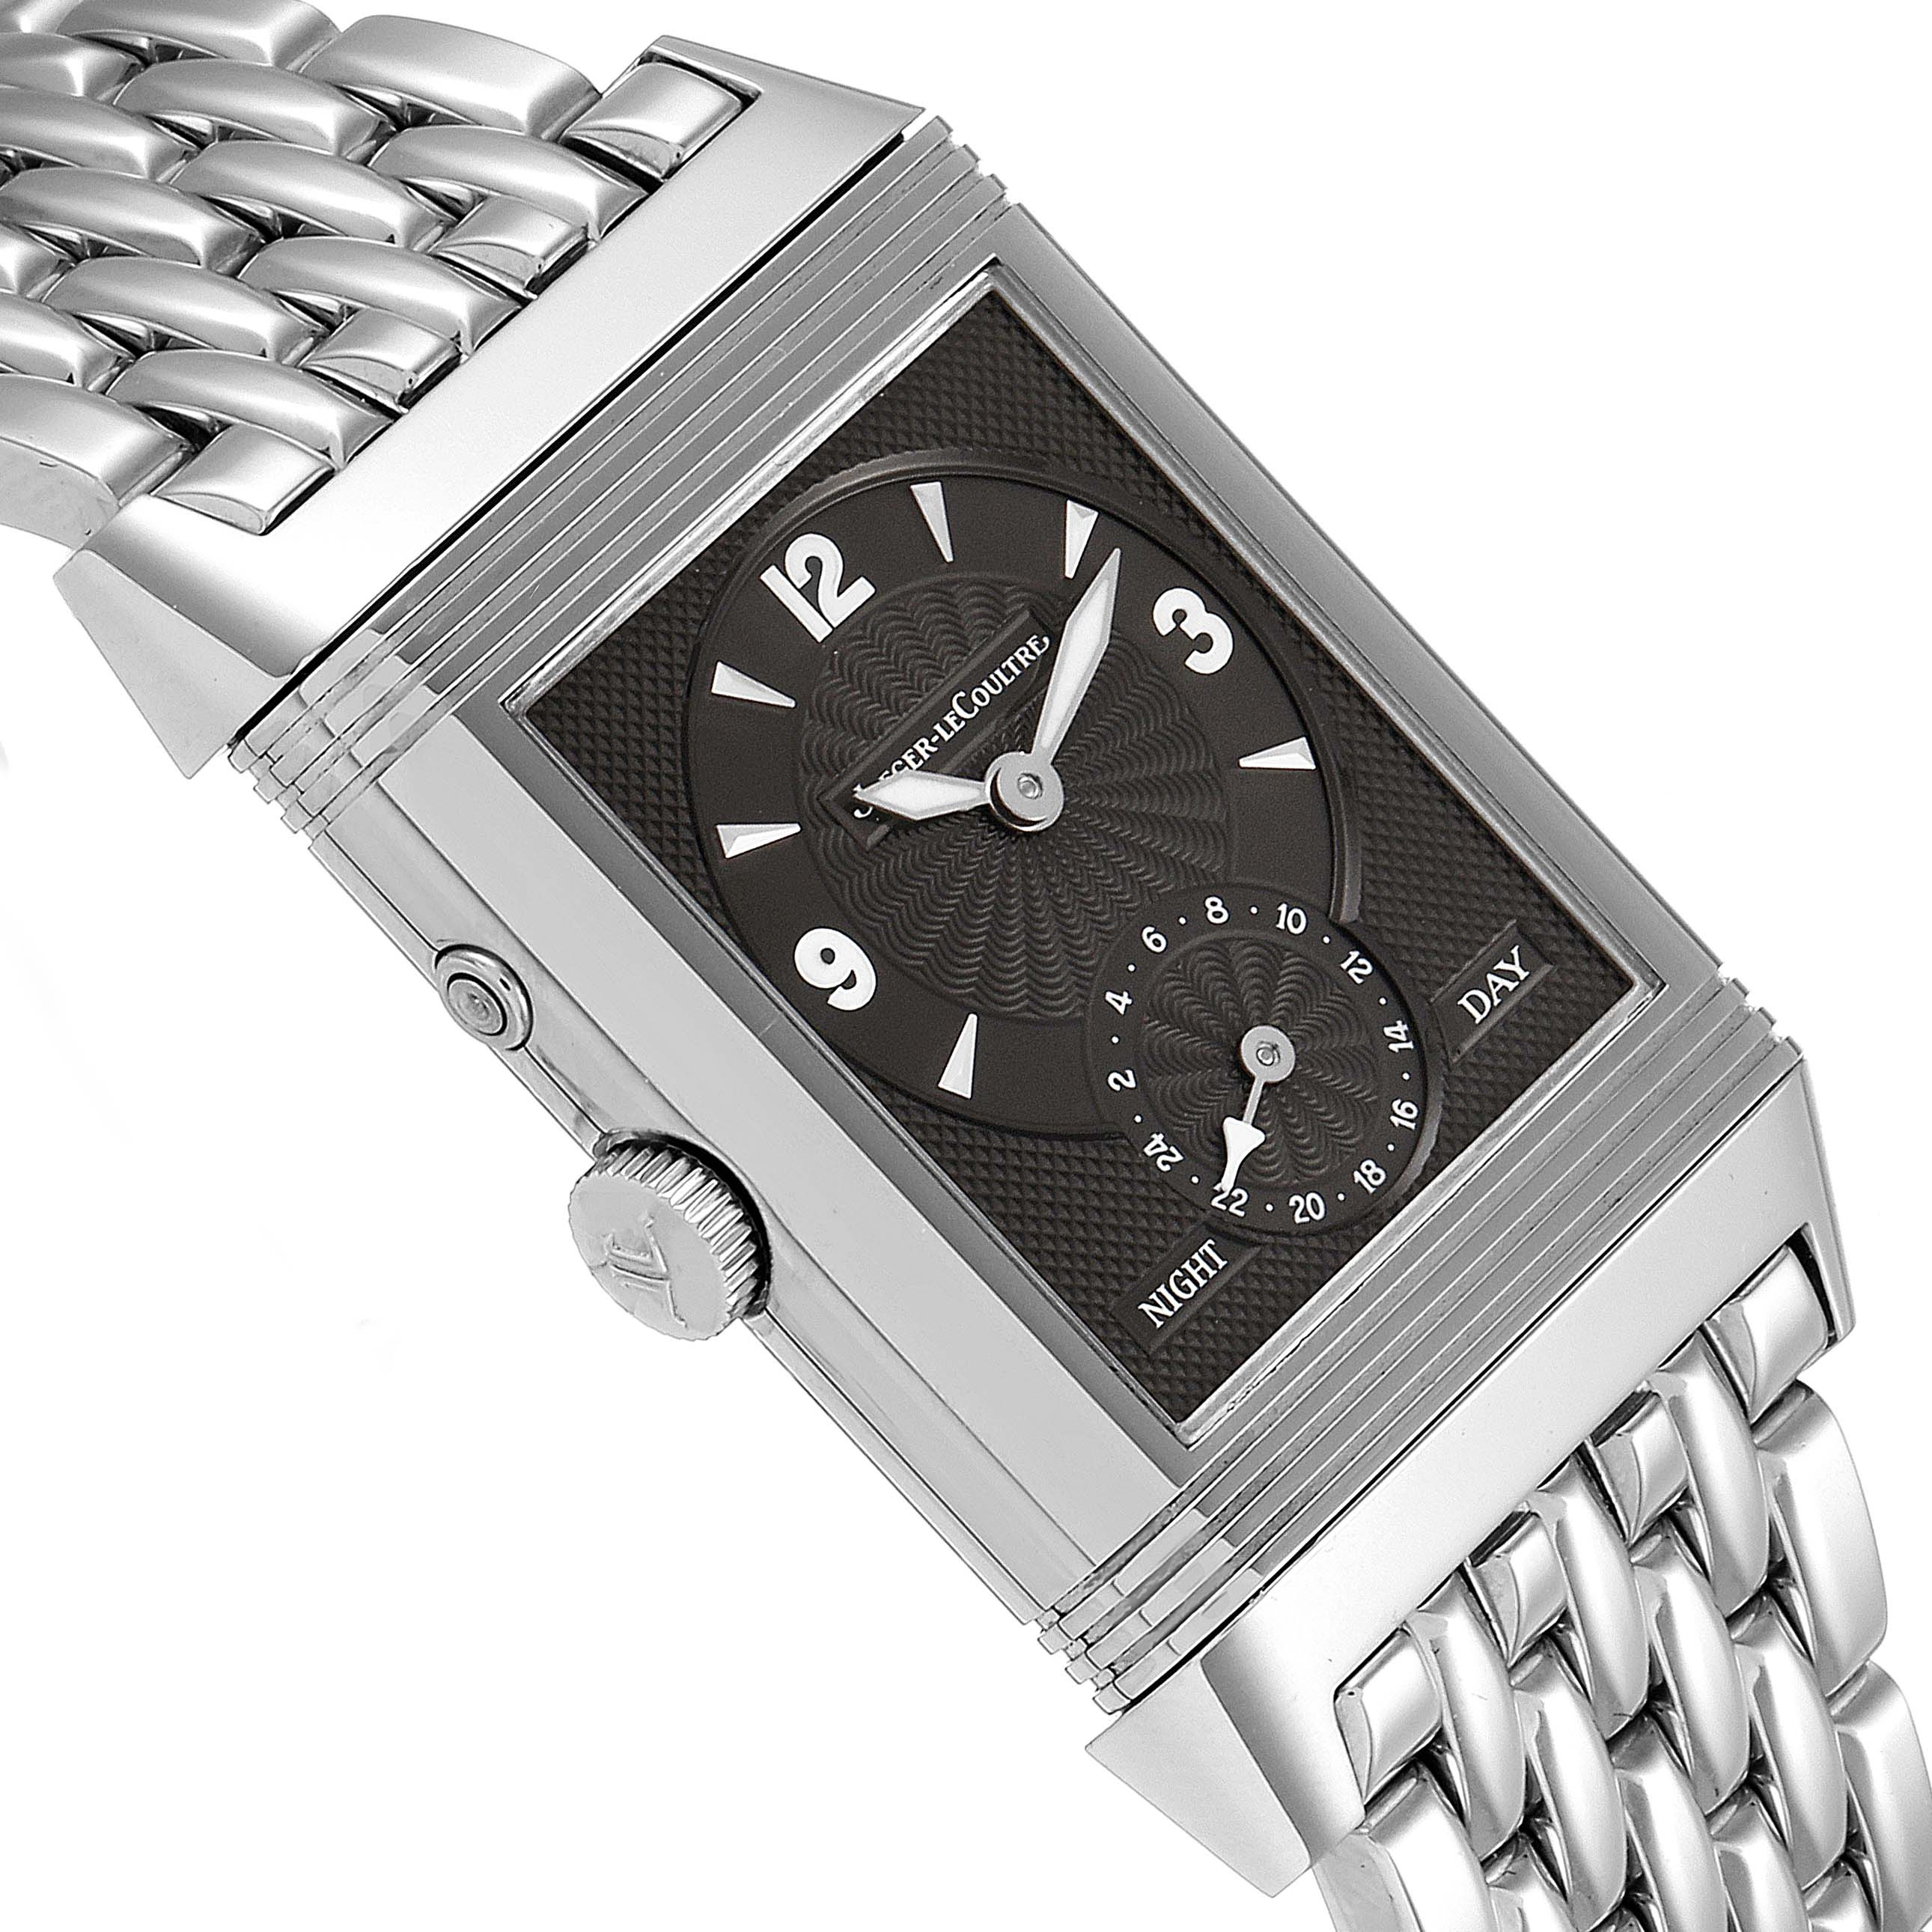 Jaeger LeCoultre Reverso Duo Day Night Steel Watch 270.8.54 Q270854 SwissWatchExpo